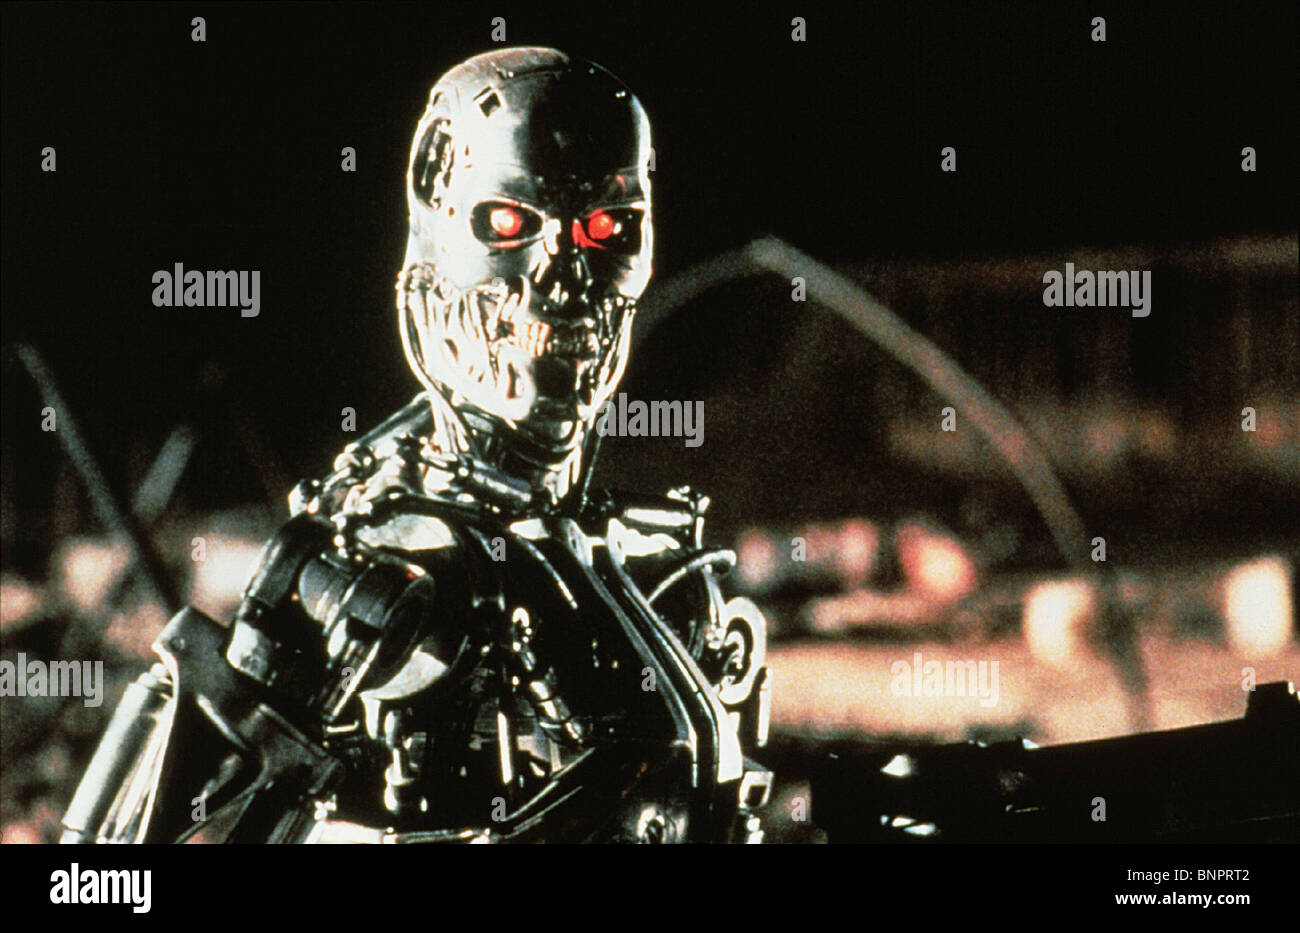 T-800 TERMINATOR 2: JUDGMENT DAY (1991) - Stock Image